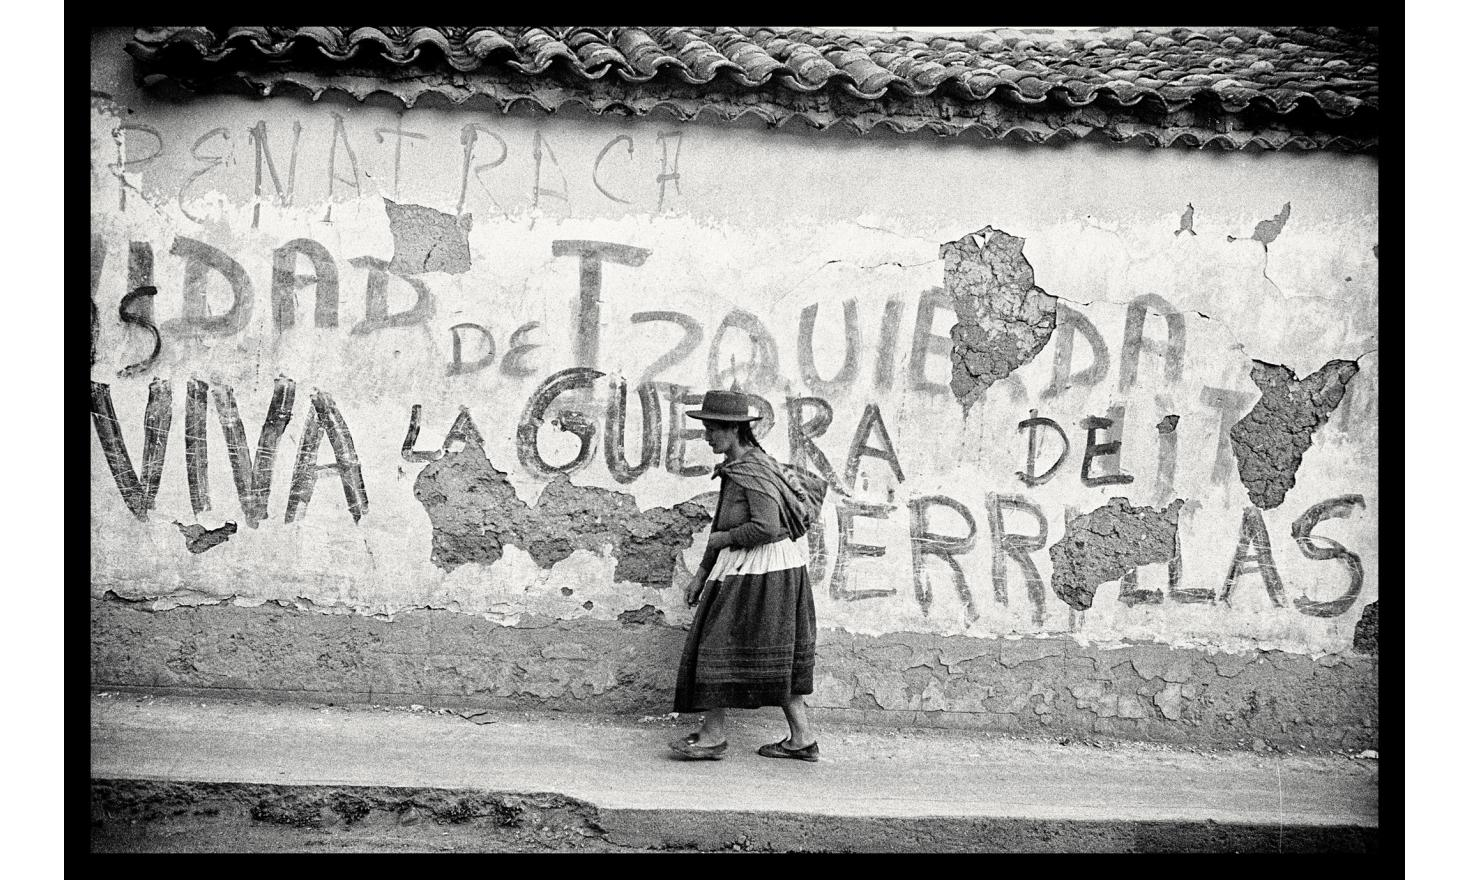 """The """"Shining Path"""" - Senderoso luminoso- is a violent maoist guerrilla fighting the peruvian army, and the peruvian institutions, in the Ayacucho region. Ayacucho, Peru. October 1982"""